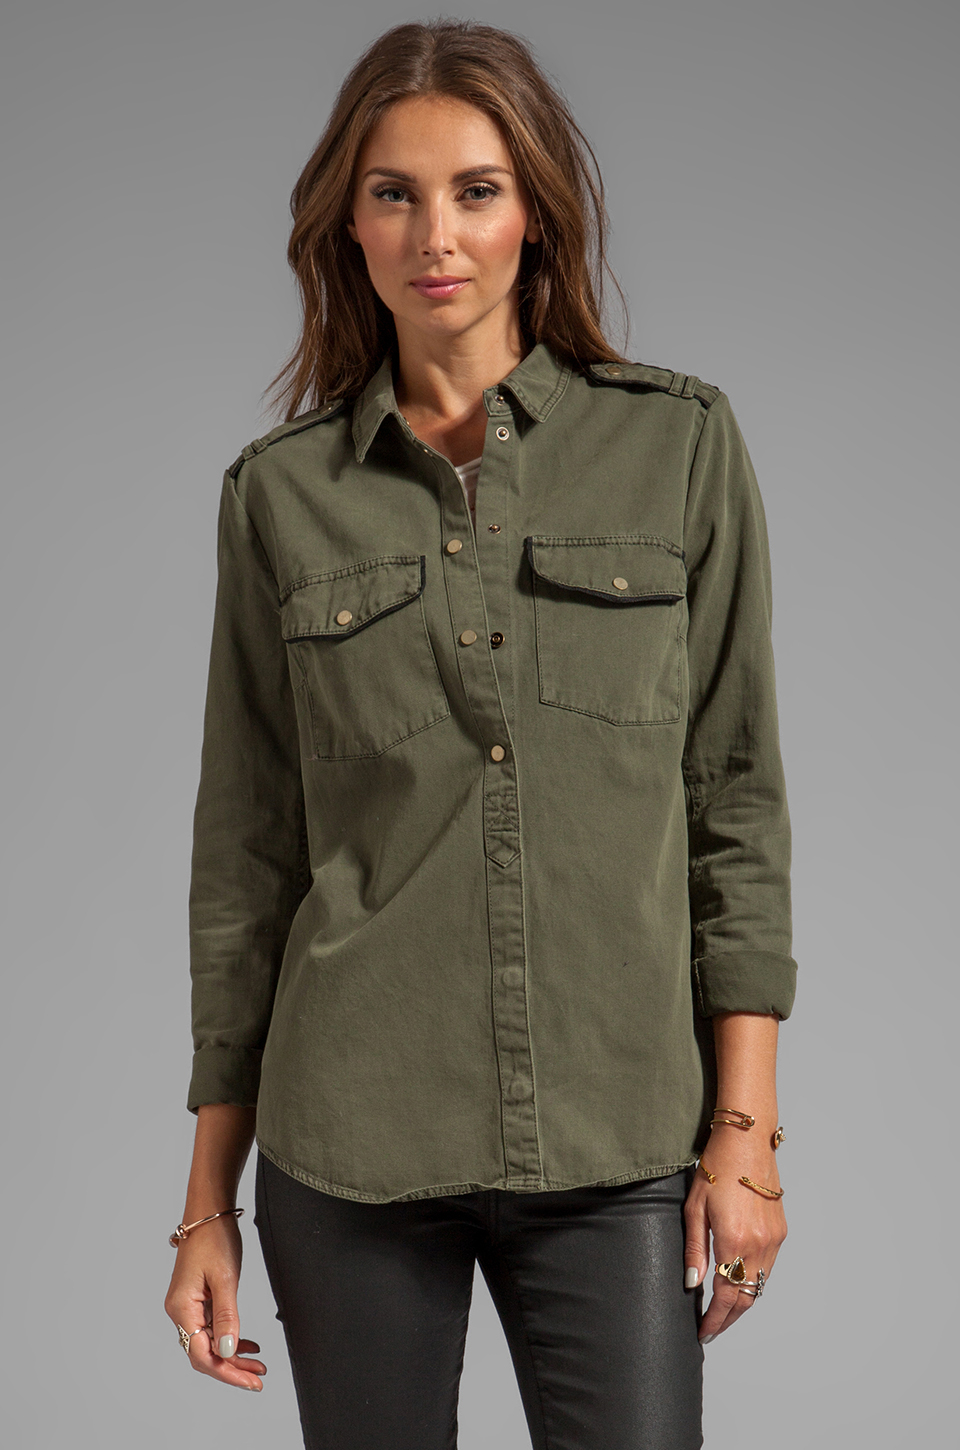 Sanctuary Army Shirt Jacket in Green - Lyst